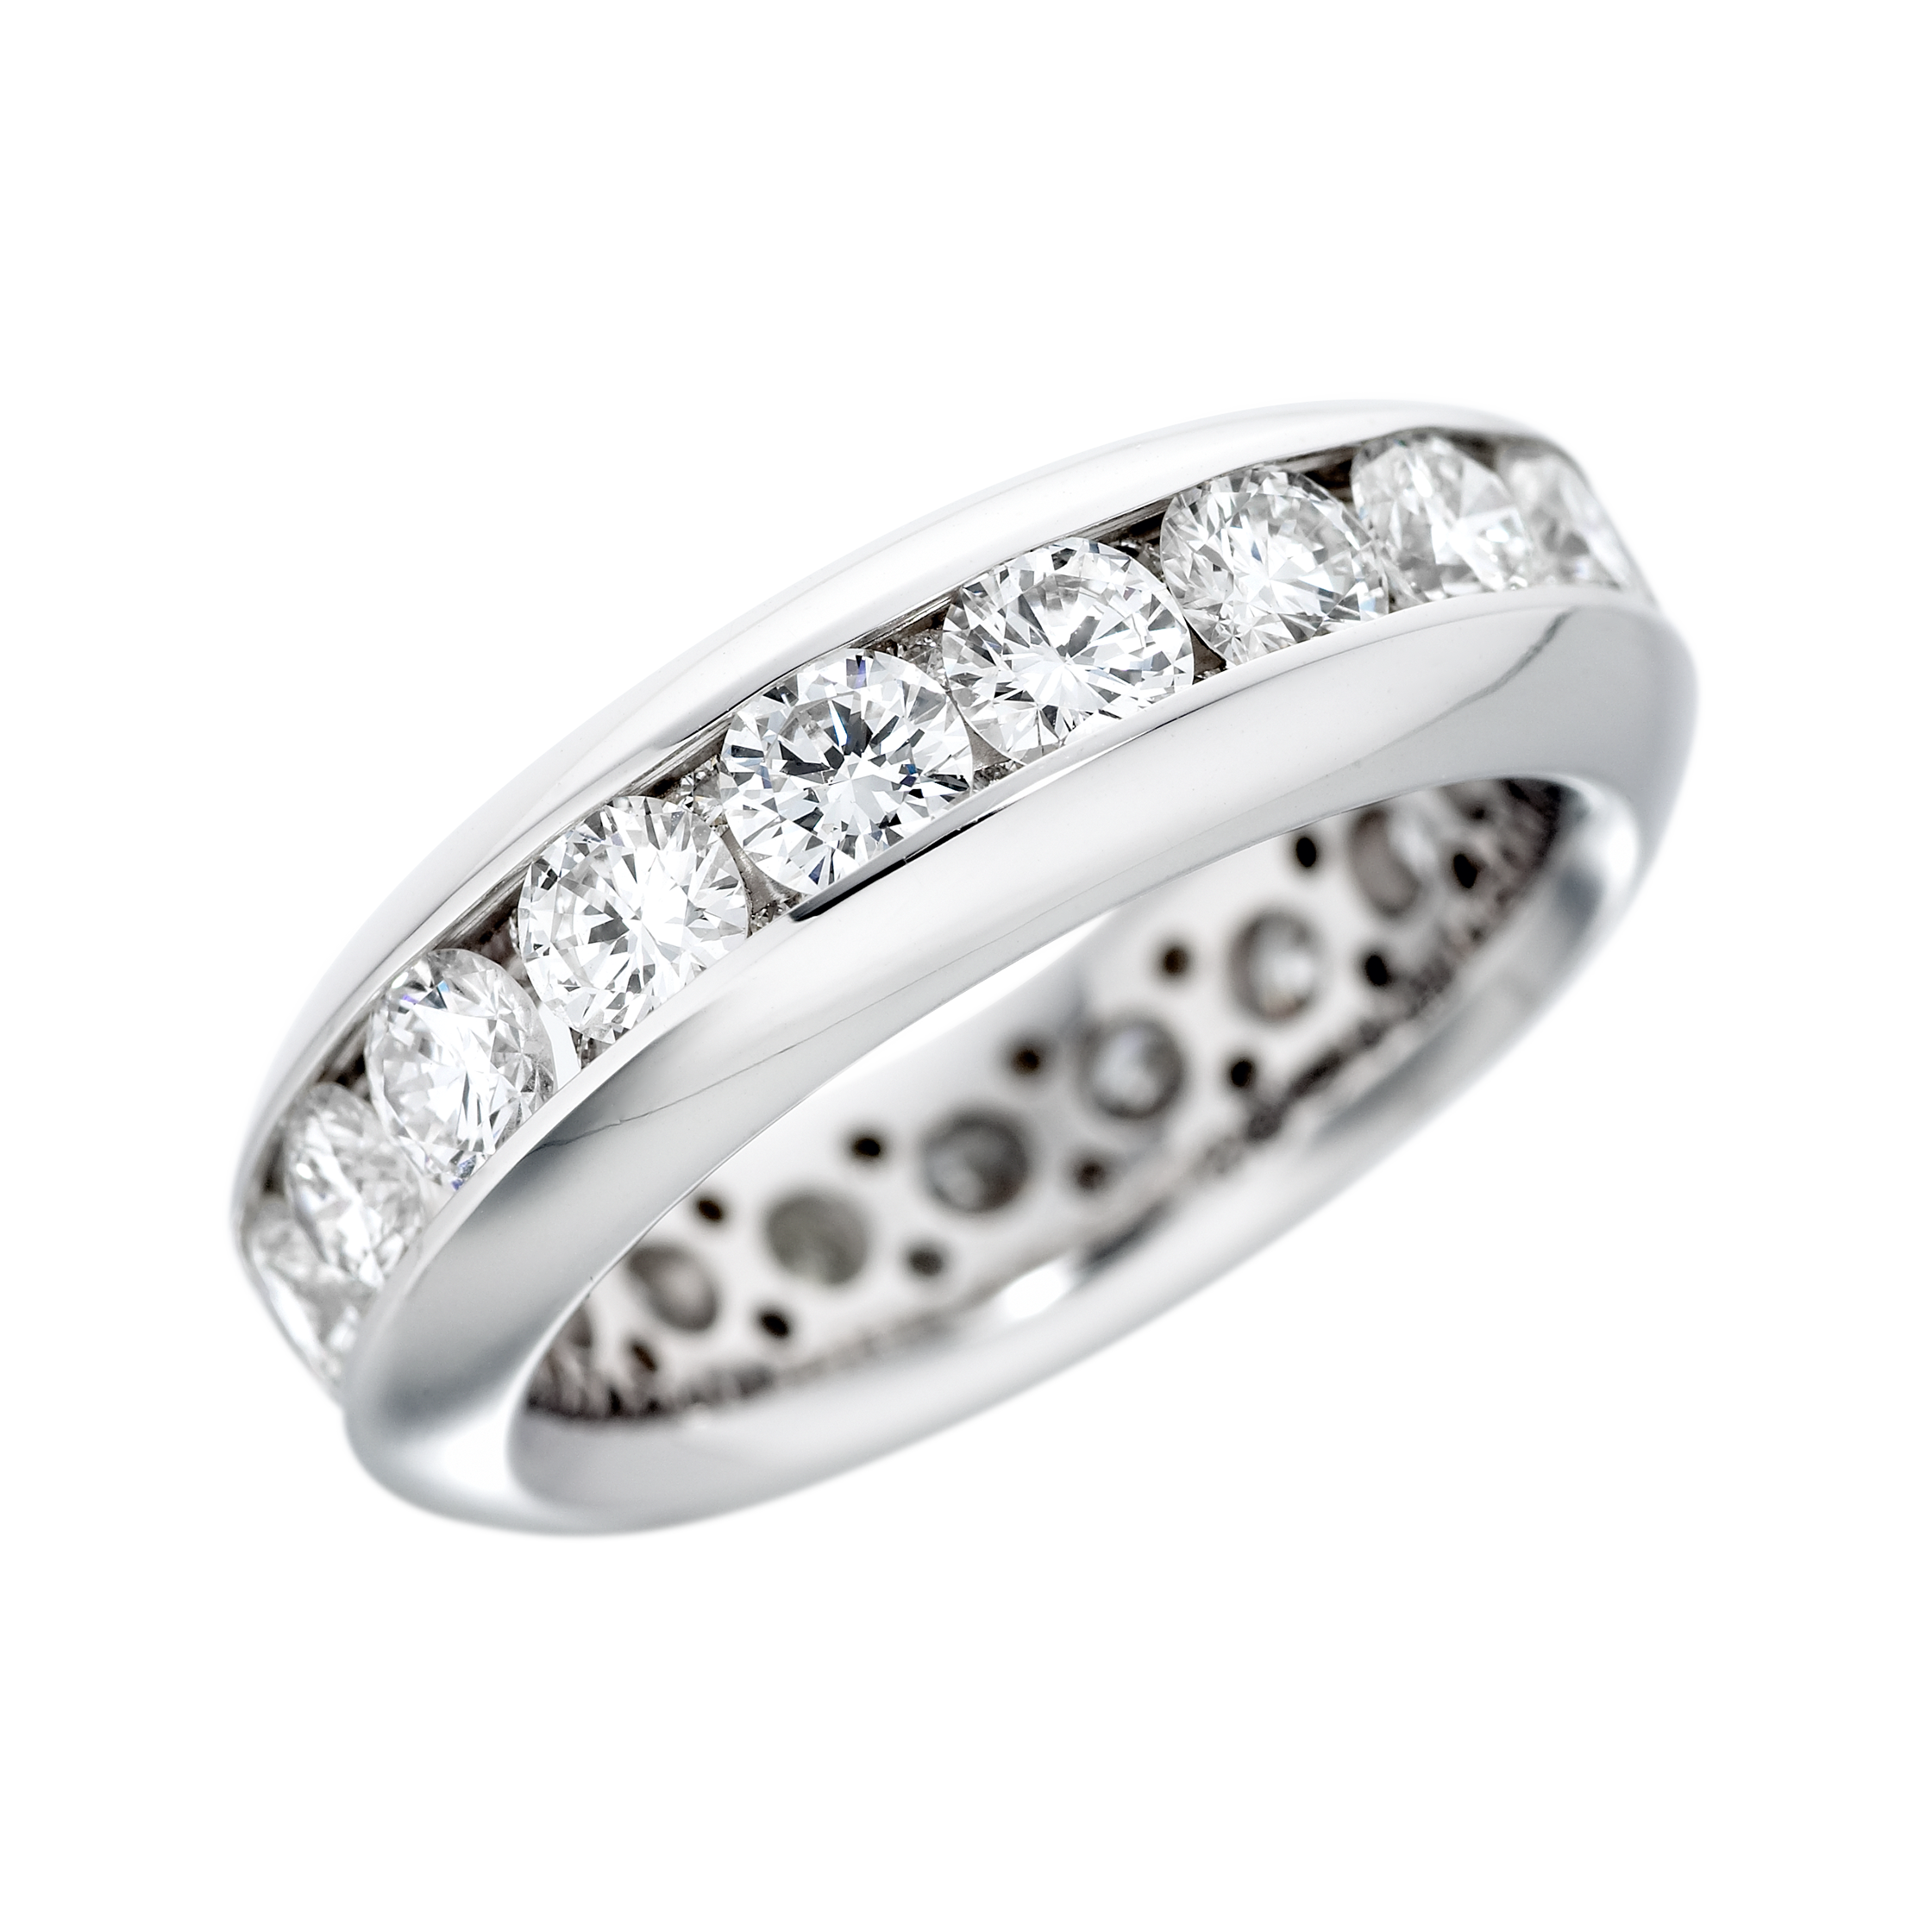 brothers ring rings diamond solomon strada collection set channel m engagement michael item